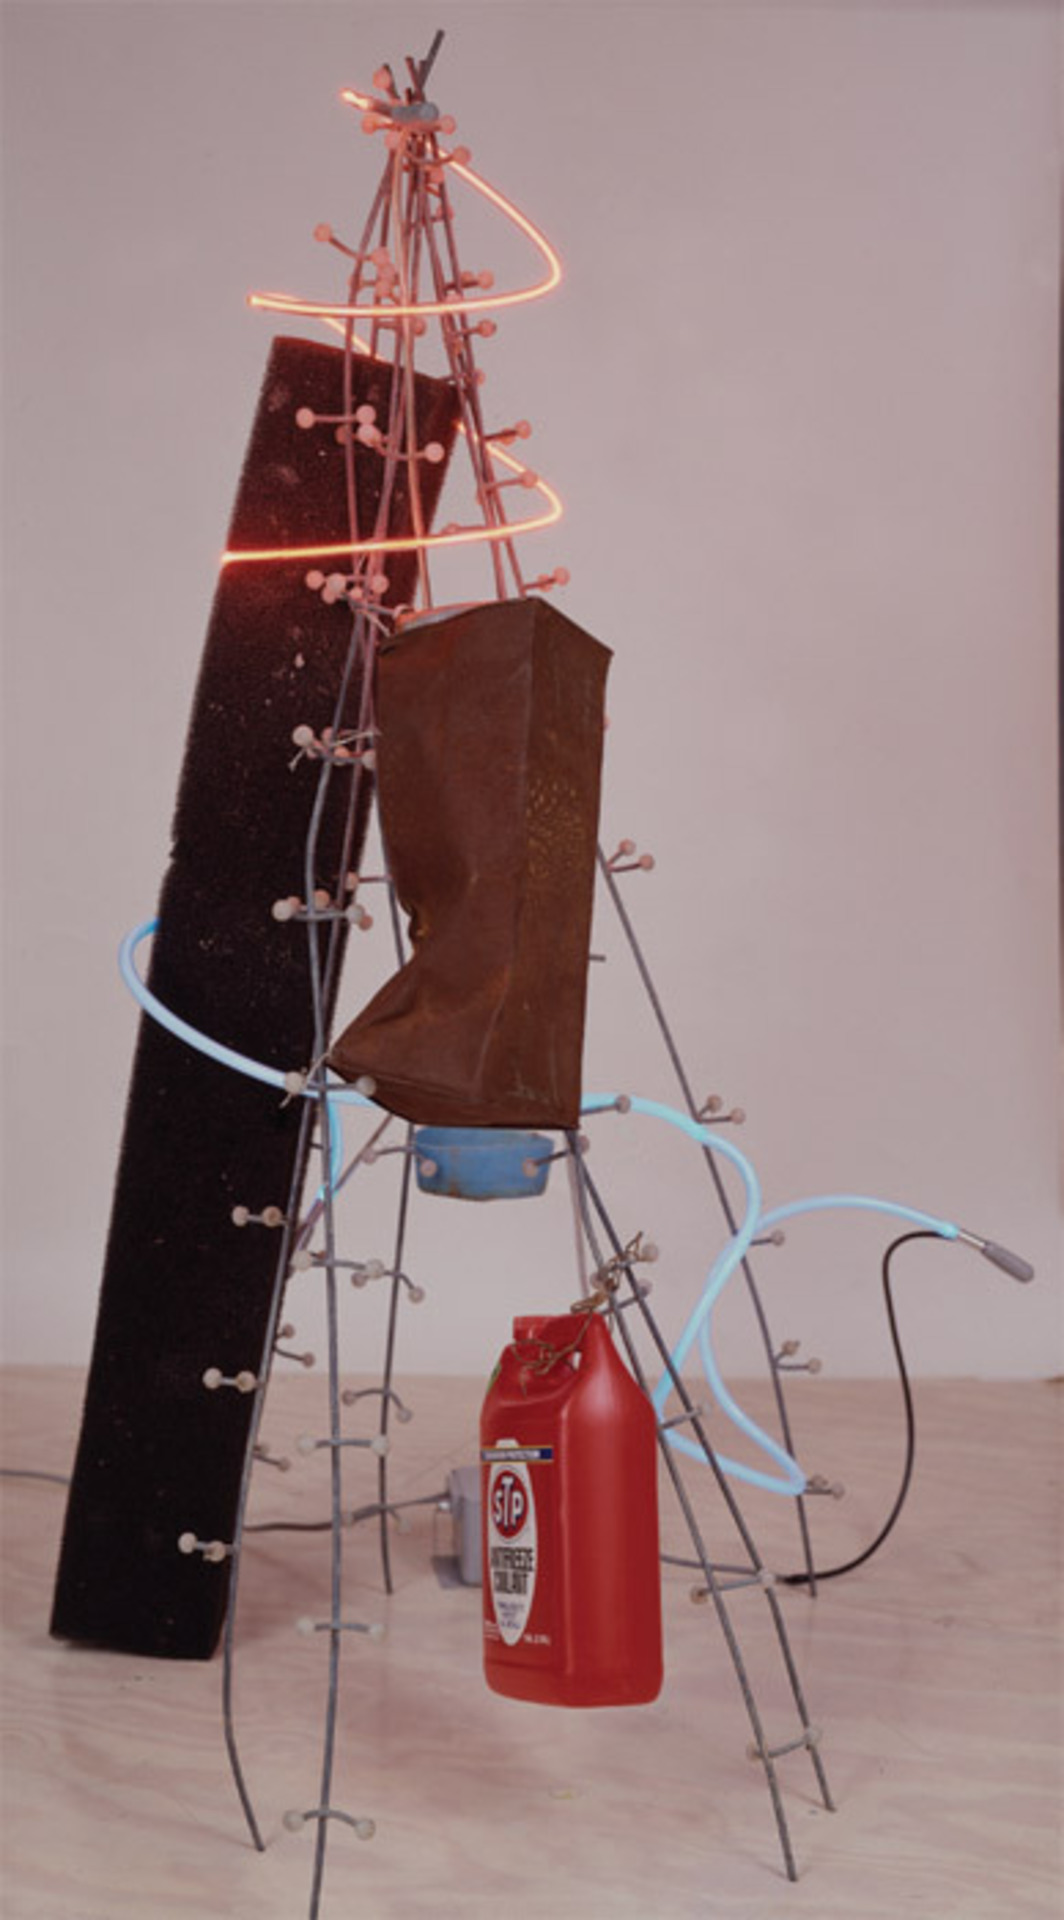 "Keith Sonnier, Catahoula, 1994, mixed media, neon, found objects, 56 x 29 x 24"". From the series ""Tidewater,"" 1994."